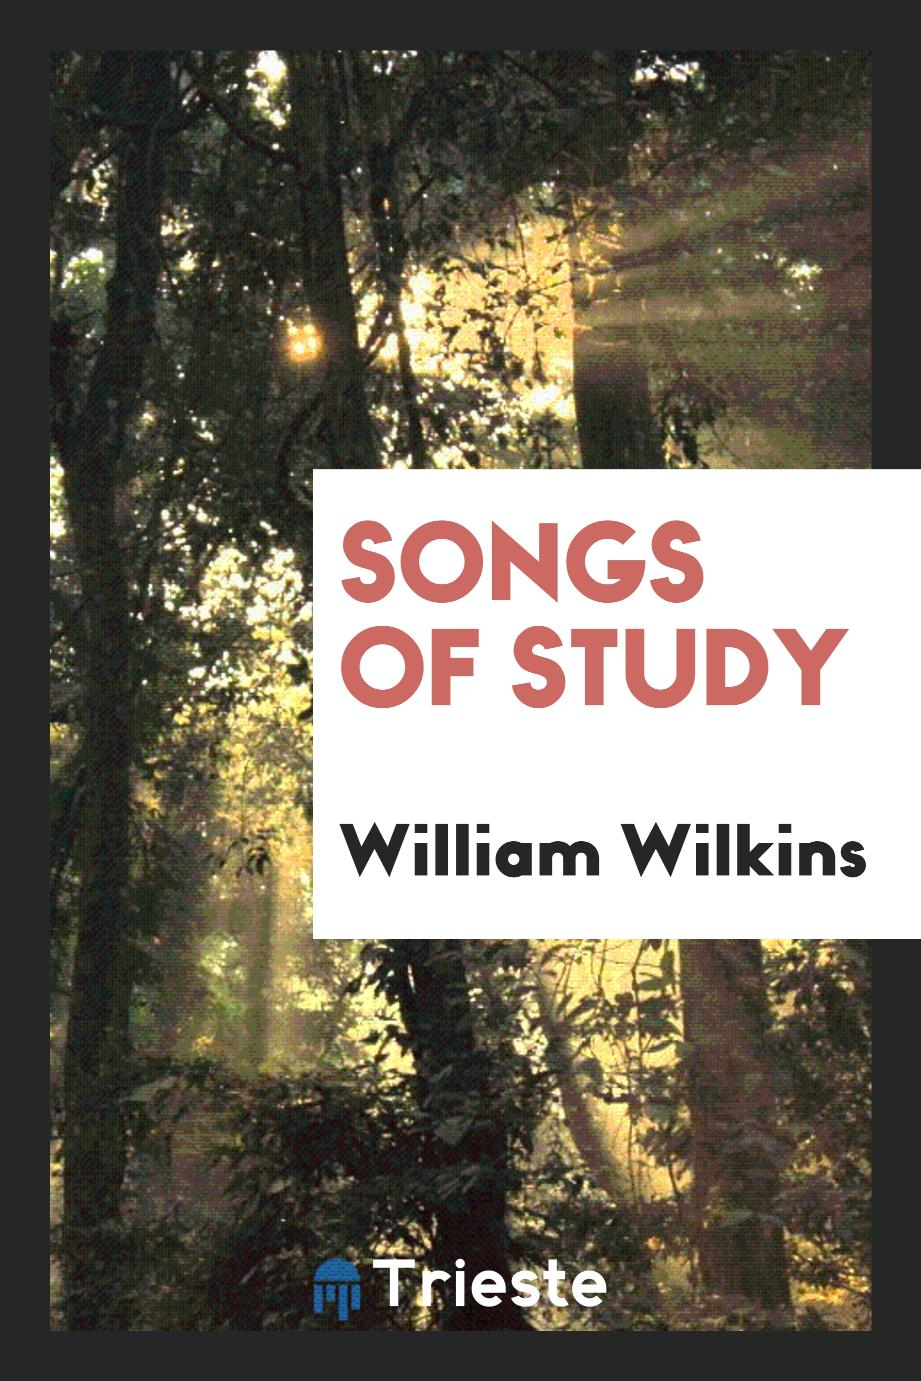 Songs of study